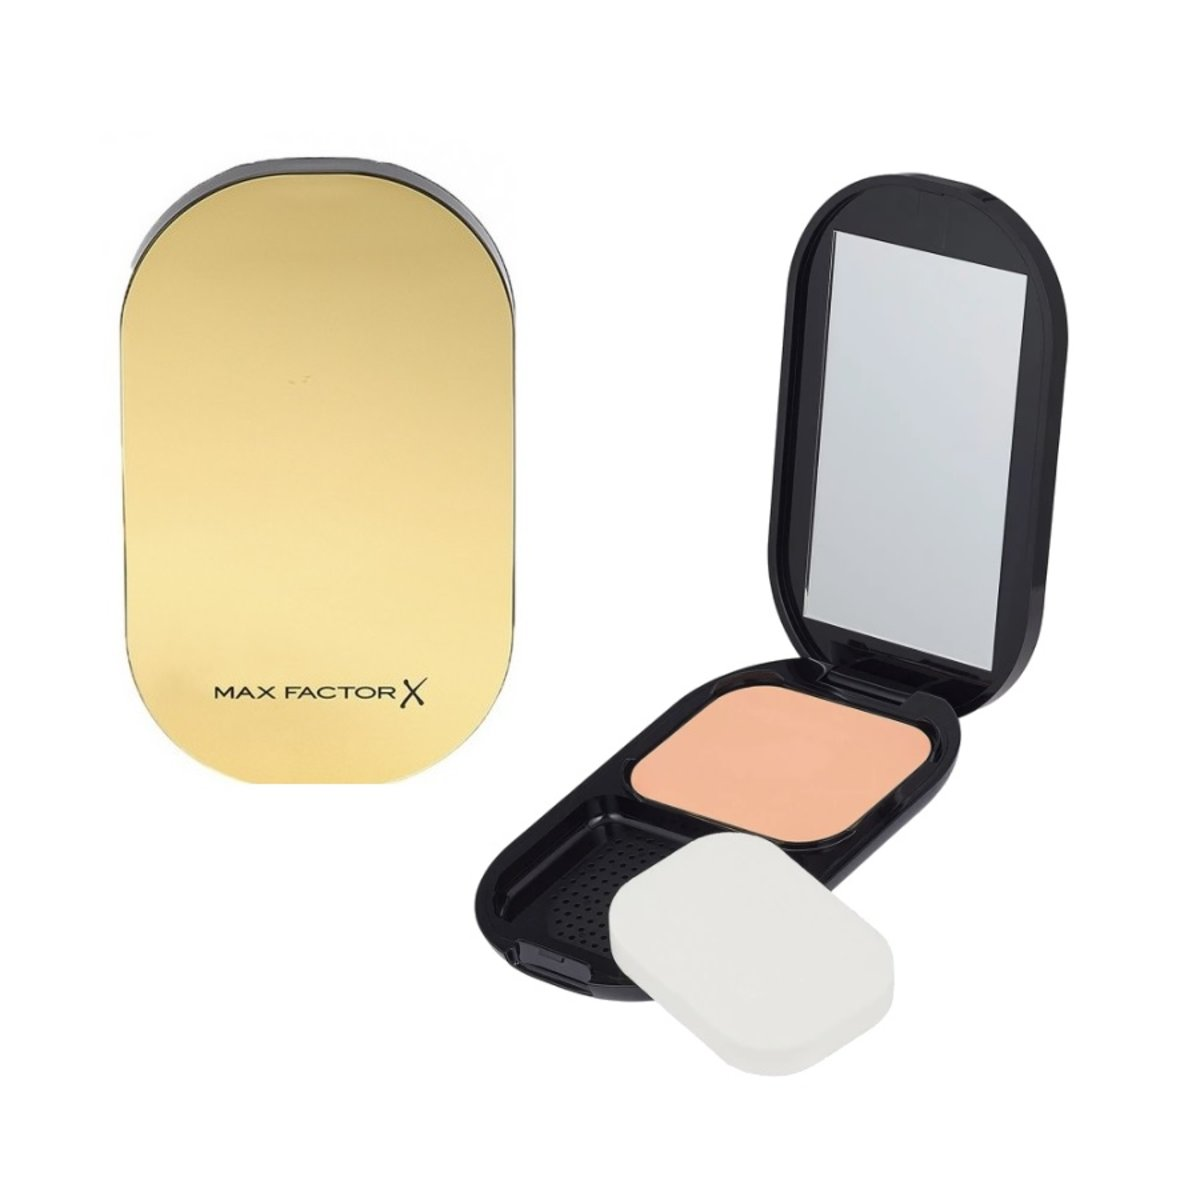 X Facefinity Compact Foundation #01 Porcelain 10g [Parallel Import] (8005610544915)